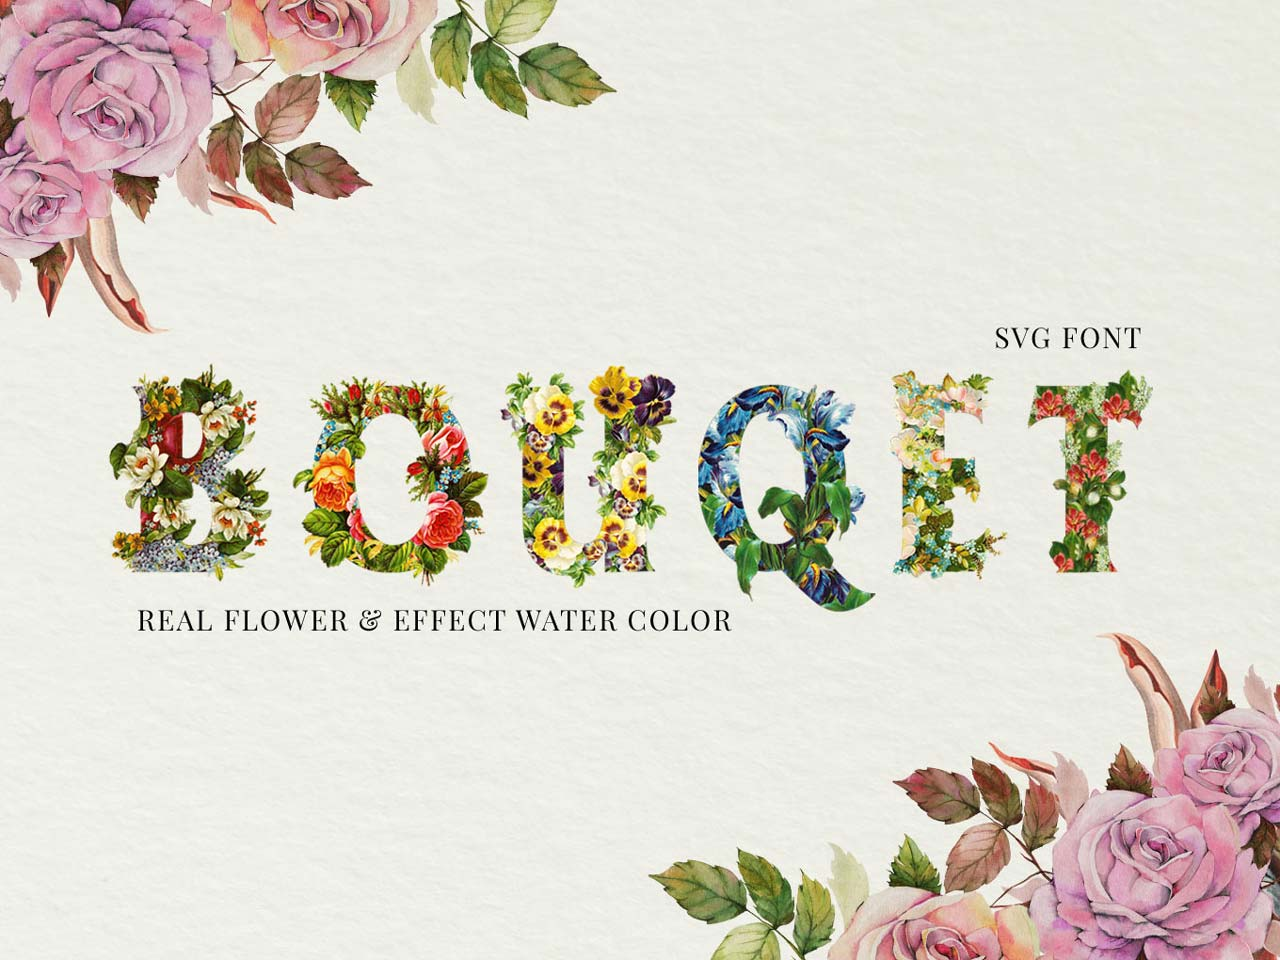 Flower Bouquet SVG Font